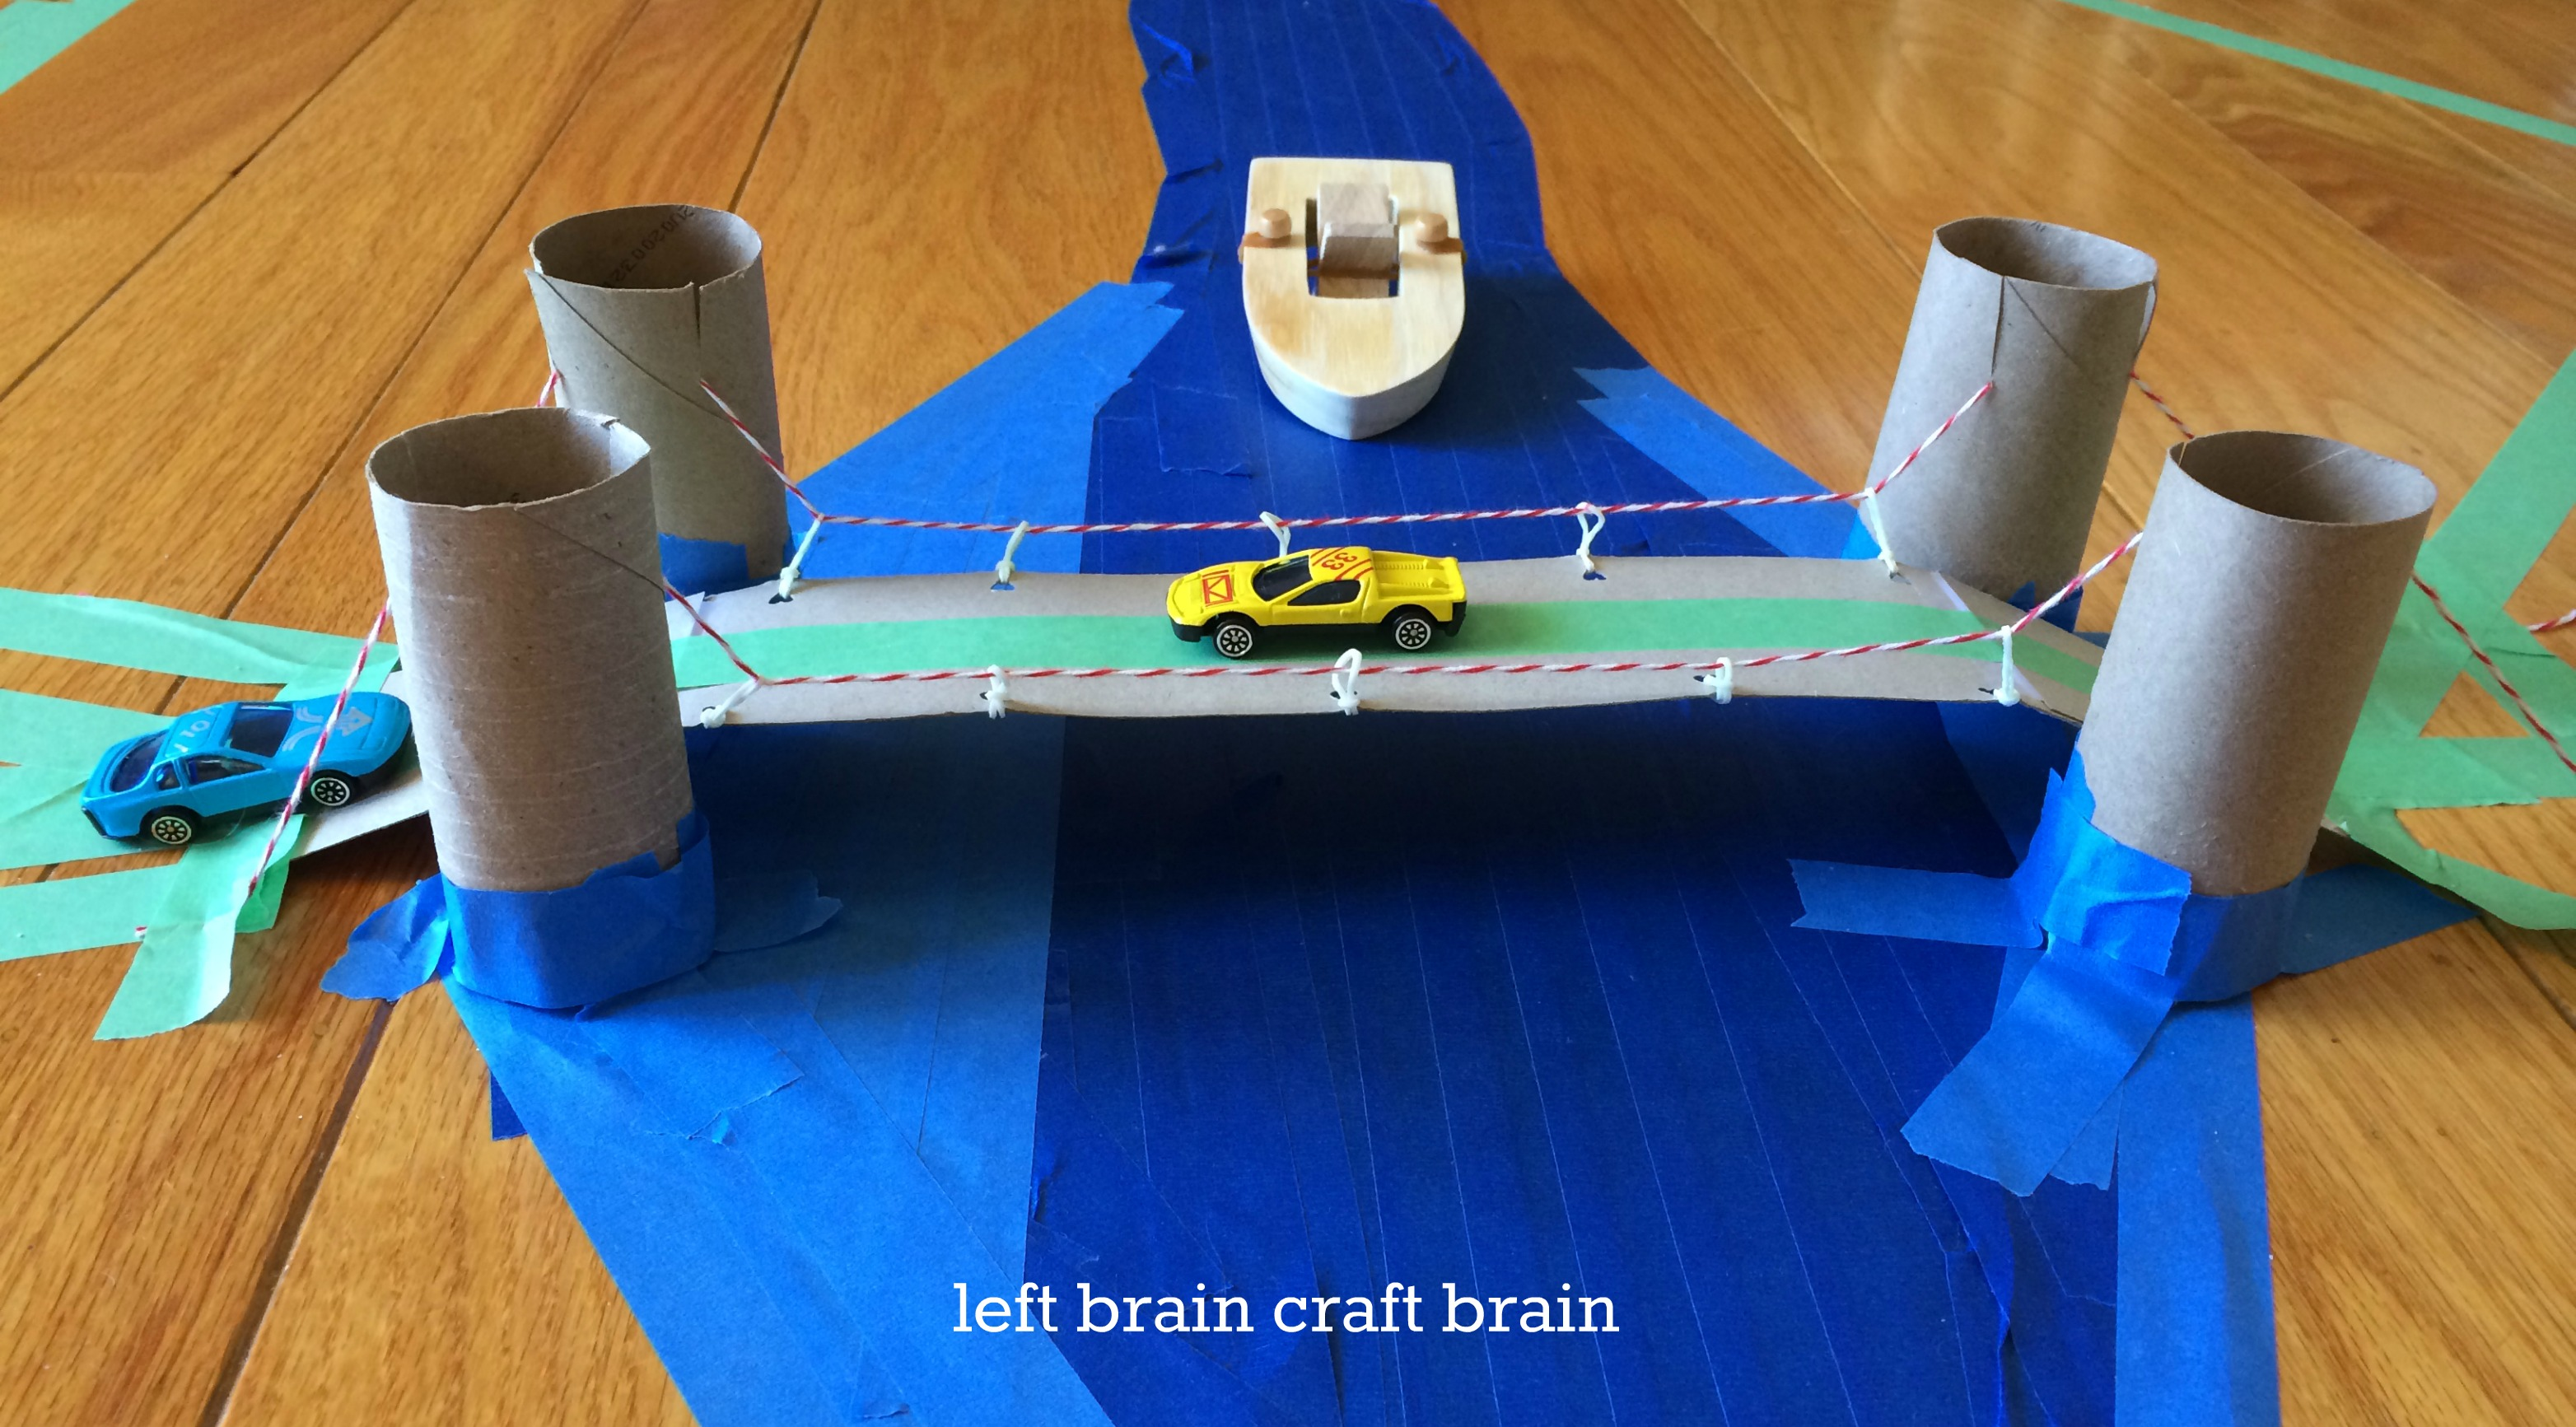 diy recycled suspension bridge craft closeup left brain craft brain